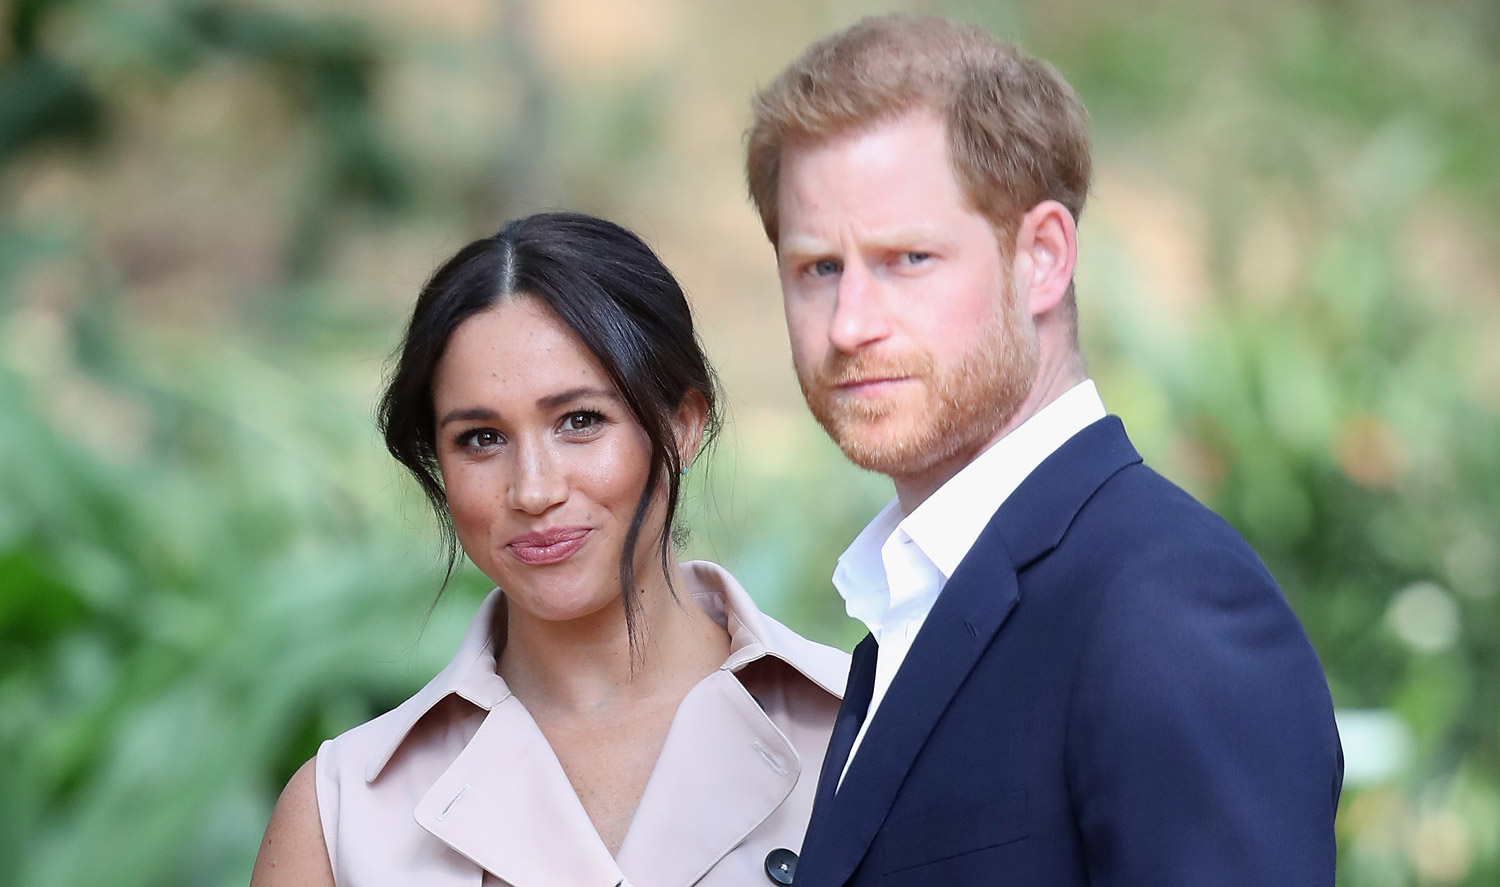 Prince Harry & Meghan Markle Give Up Royal Titles – Here's What This Means for Their Future